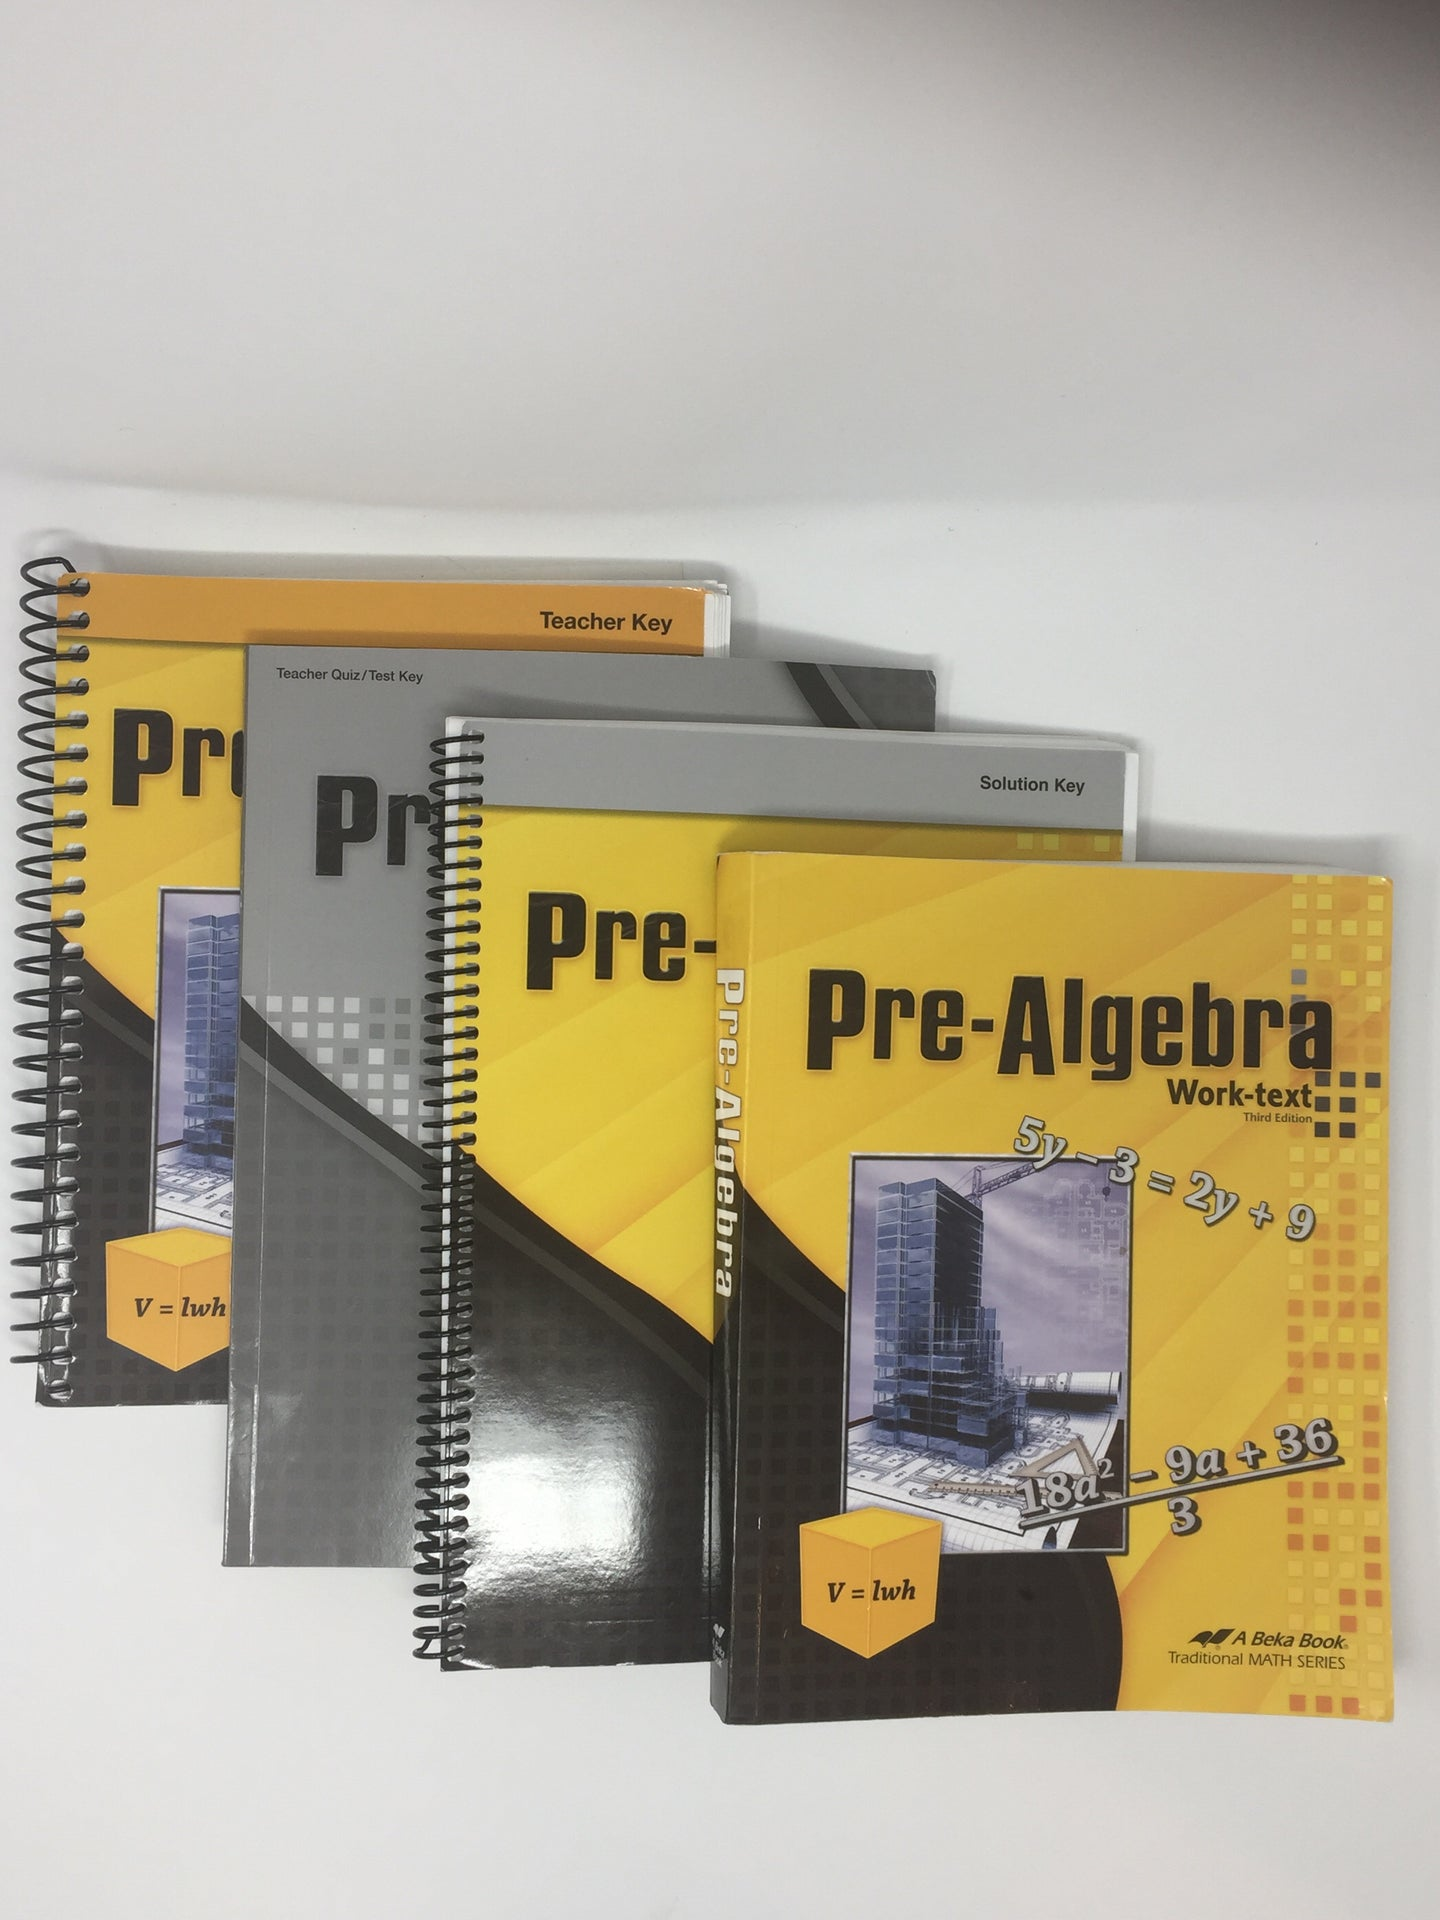 Pre-Algebra Set - Abeka 3rd Edtion (Used—Like New) - Little Green Schoolhouse Books